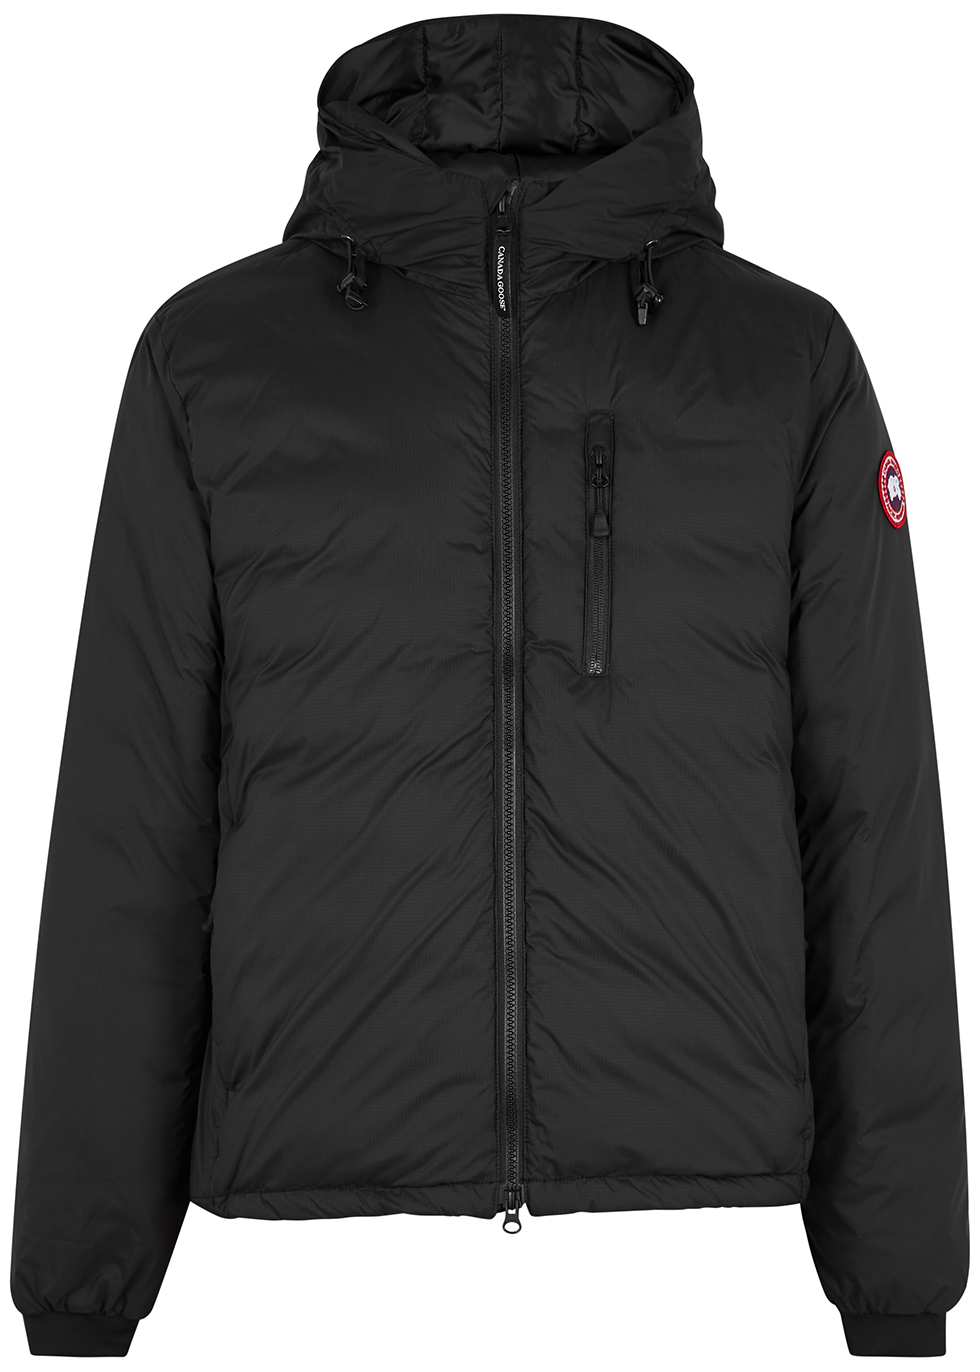 76614db1dd0 Canada Goose Lodge quilted shell jacket - Harvey Nichols